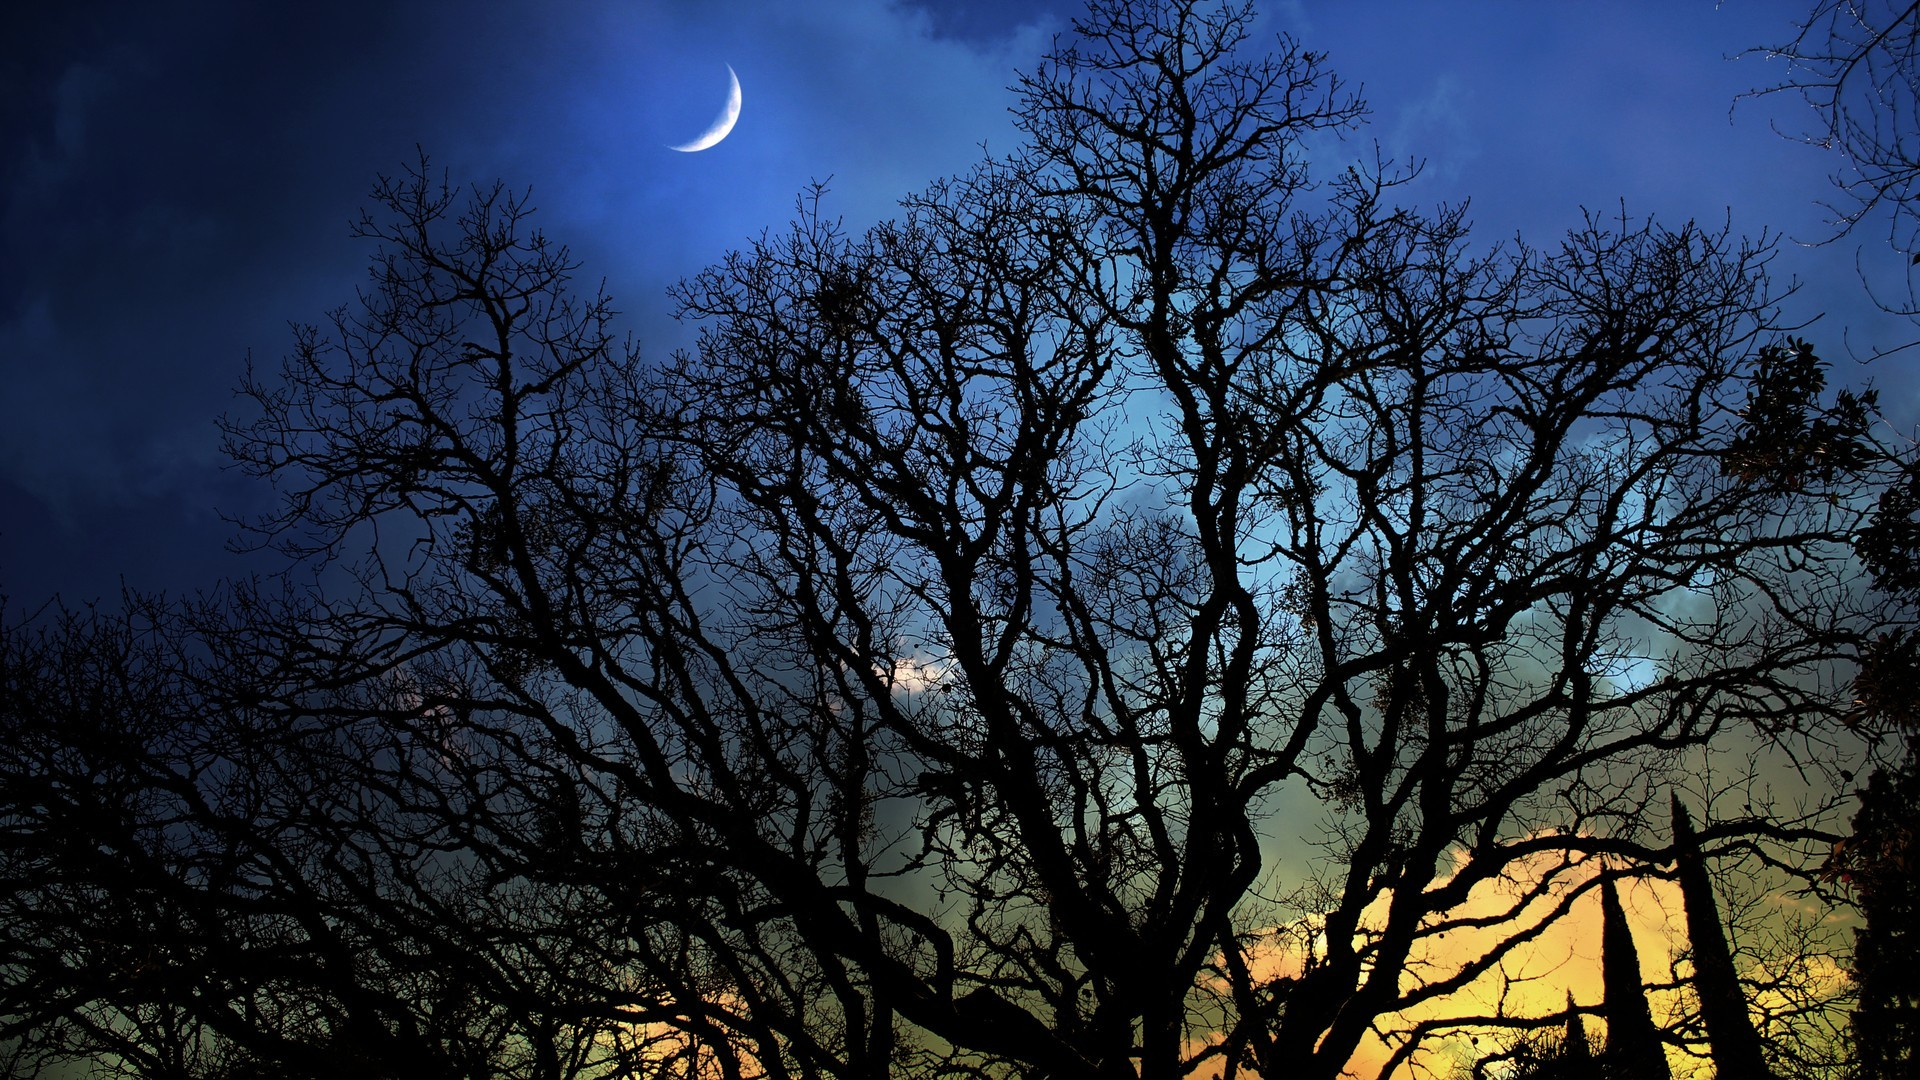 Res: 1920x1080, Scary Forest Quarter Moon Branches Dusk Trees Photo Gallery